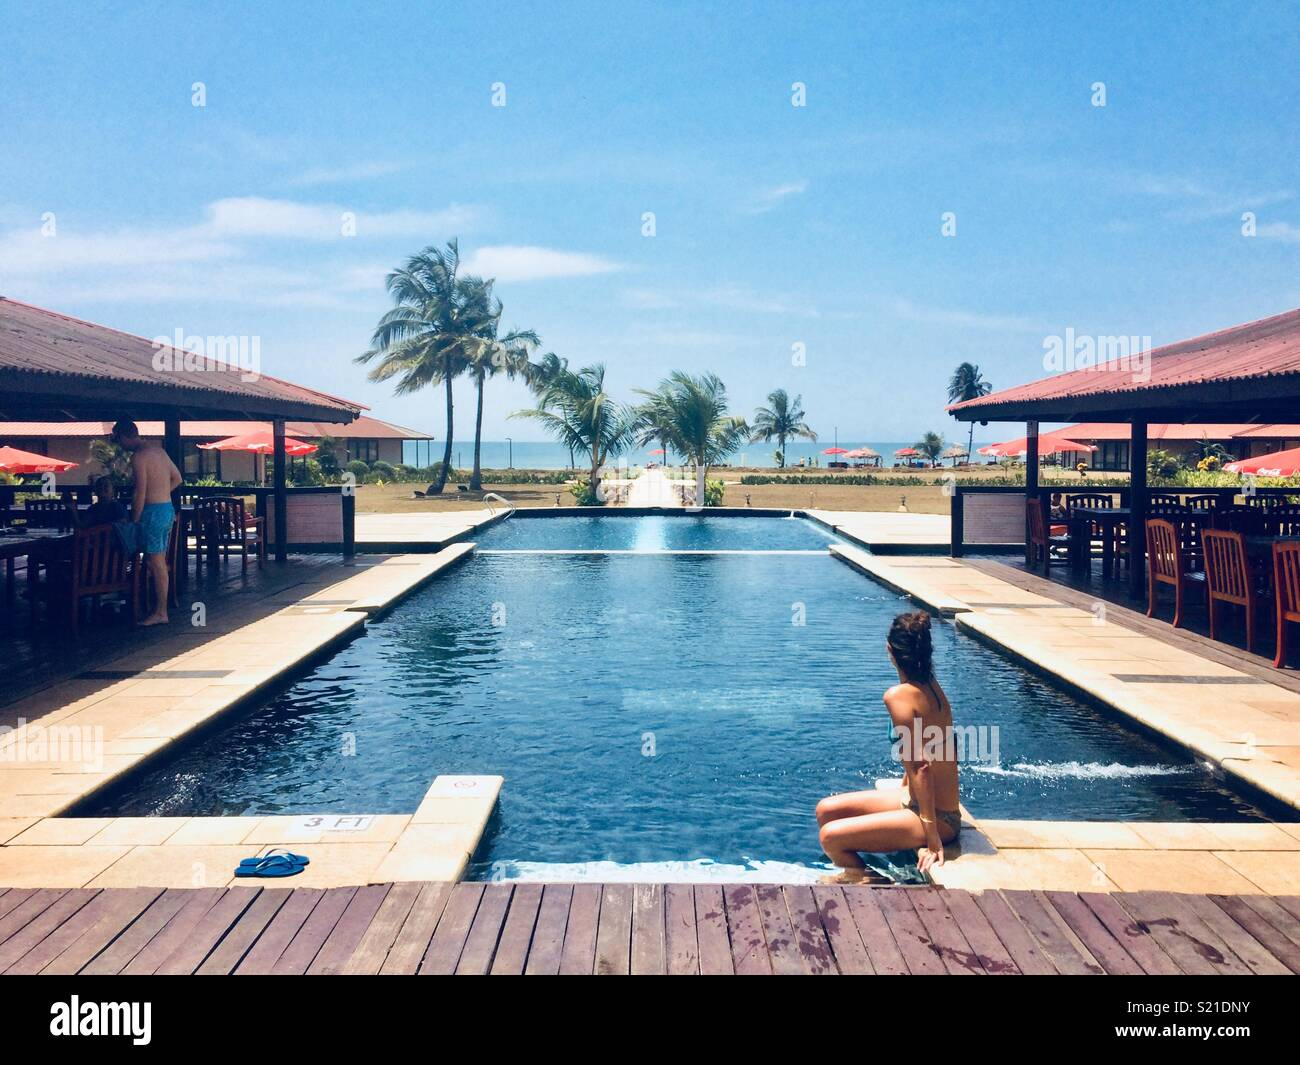 Relaxing by the pool at Kendeja beach resort in Monrovia - Stock Image